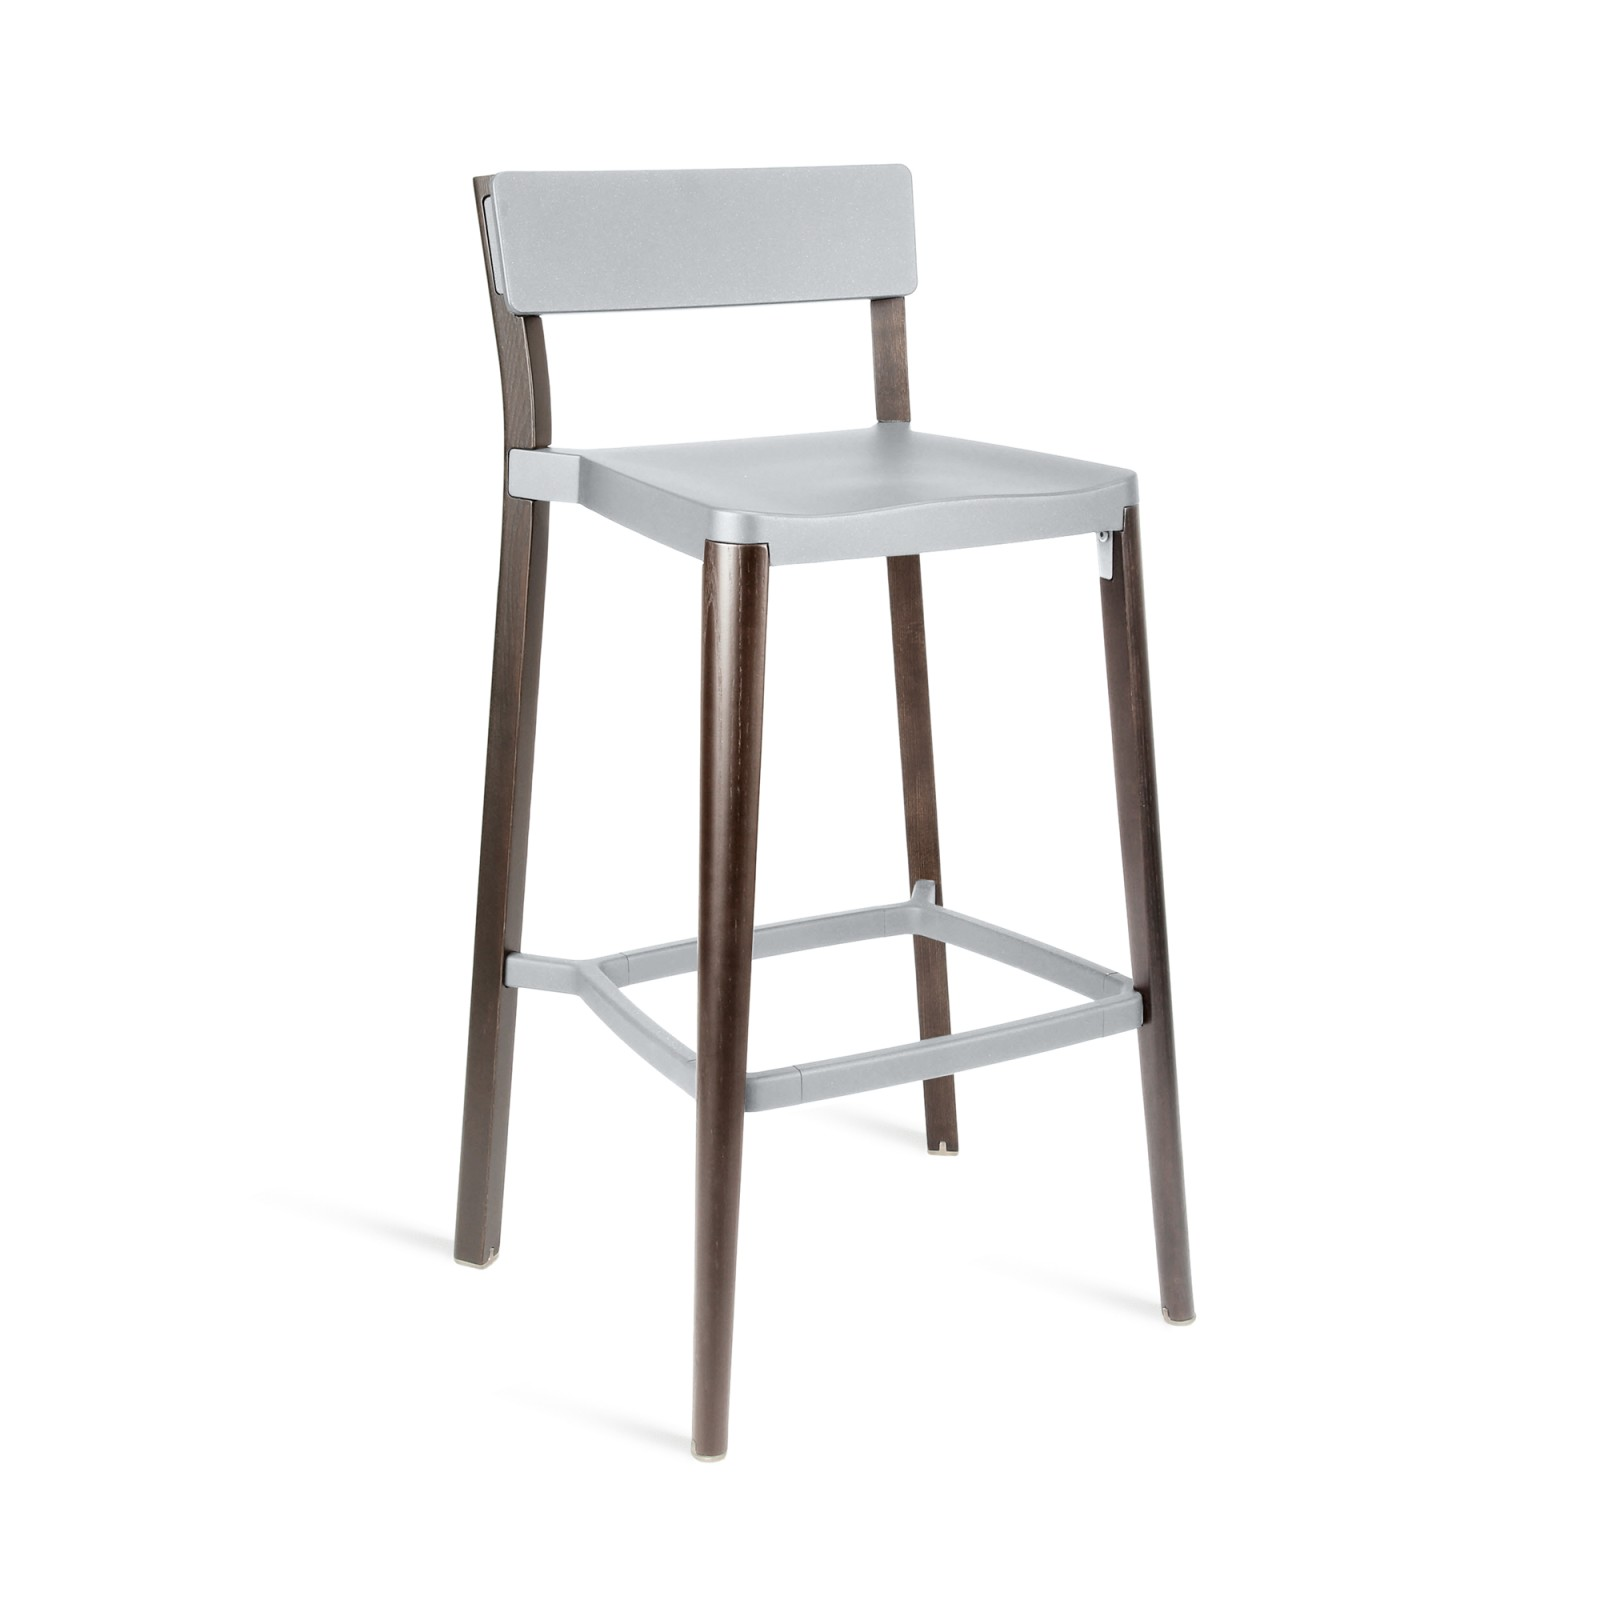 Lancaster Barstool Light Grey, Dark Wood Base, Without Seat Pad, Without Back Pad